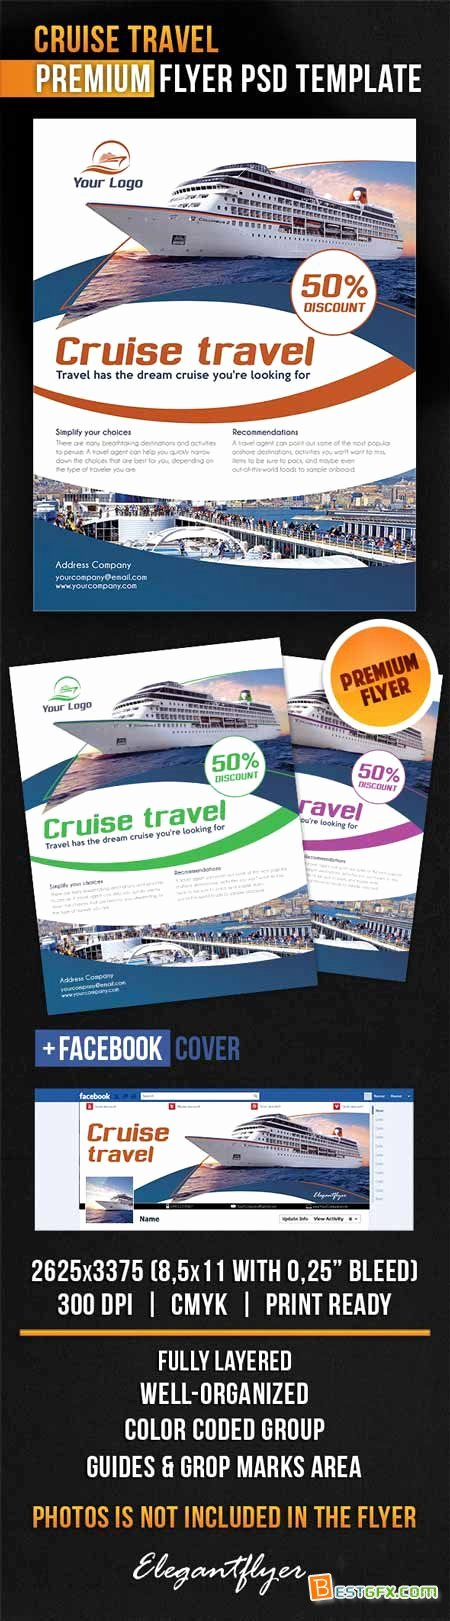 Cruise Flyer Template Free New Cruise Travel – Flyer Psd Template Cover Psd